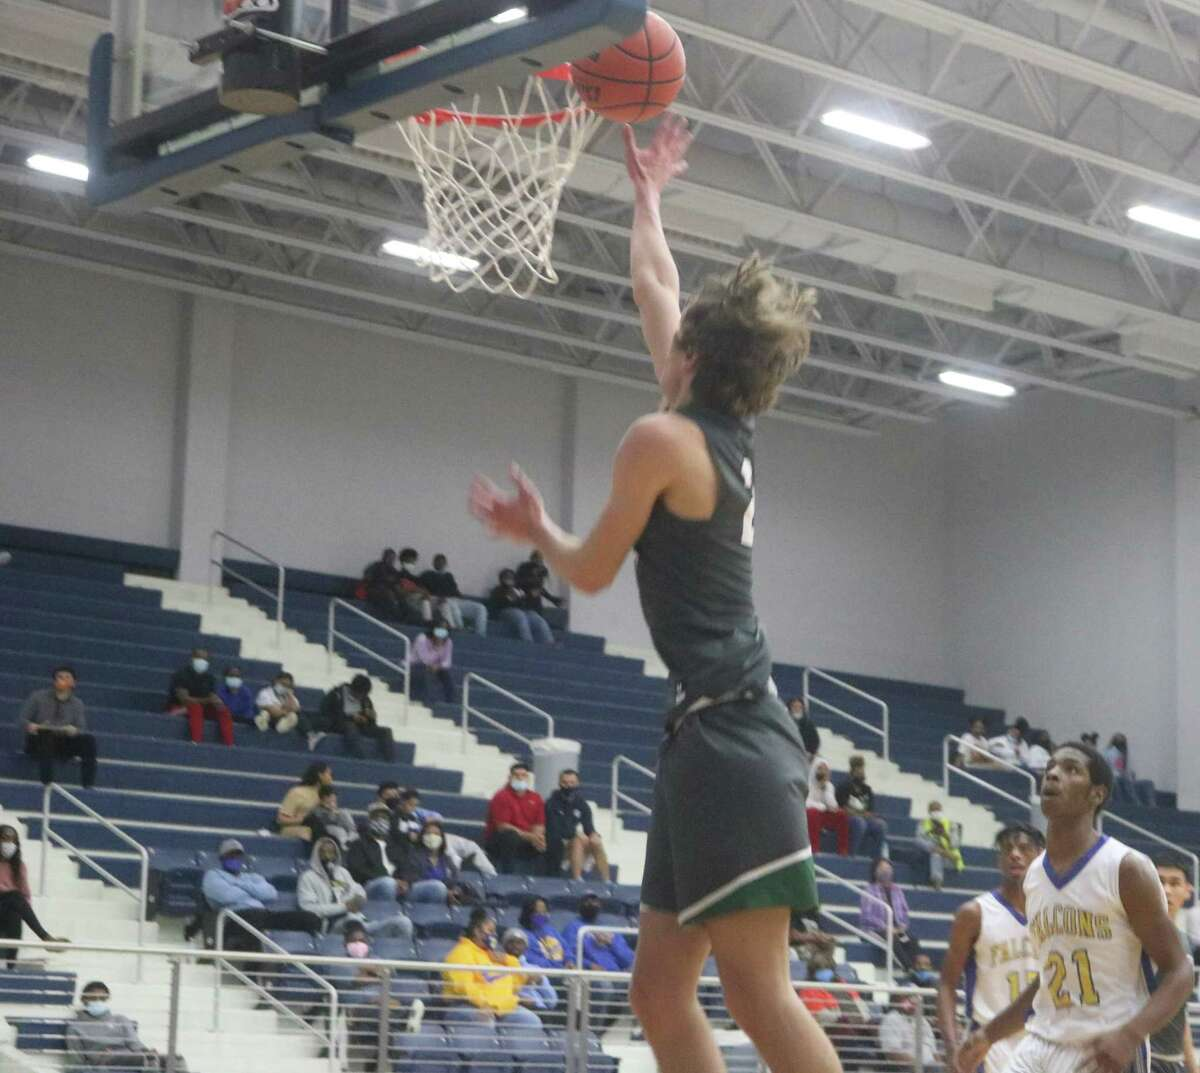 Pasadena's Brock Fosnight scores one of his six buckets during the team's big road win at Channelview a week ago. Fosnight, who also had a pretty slam dunk in the game, needs a big night against a rugged Dobie squad.